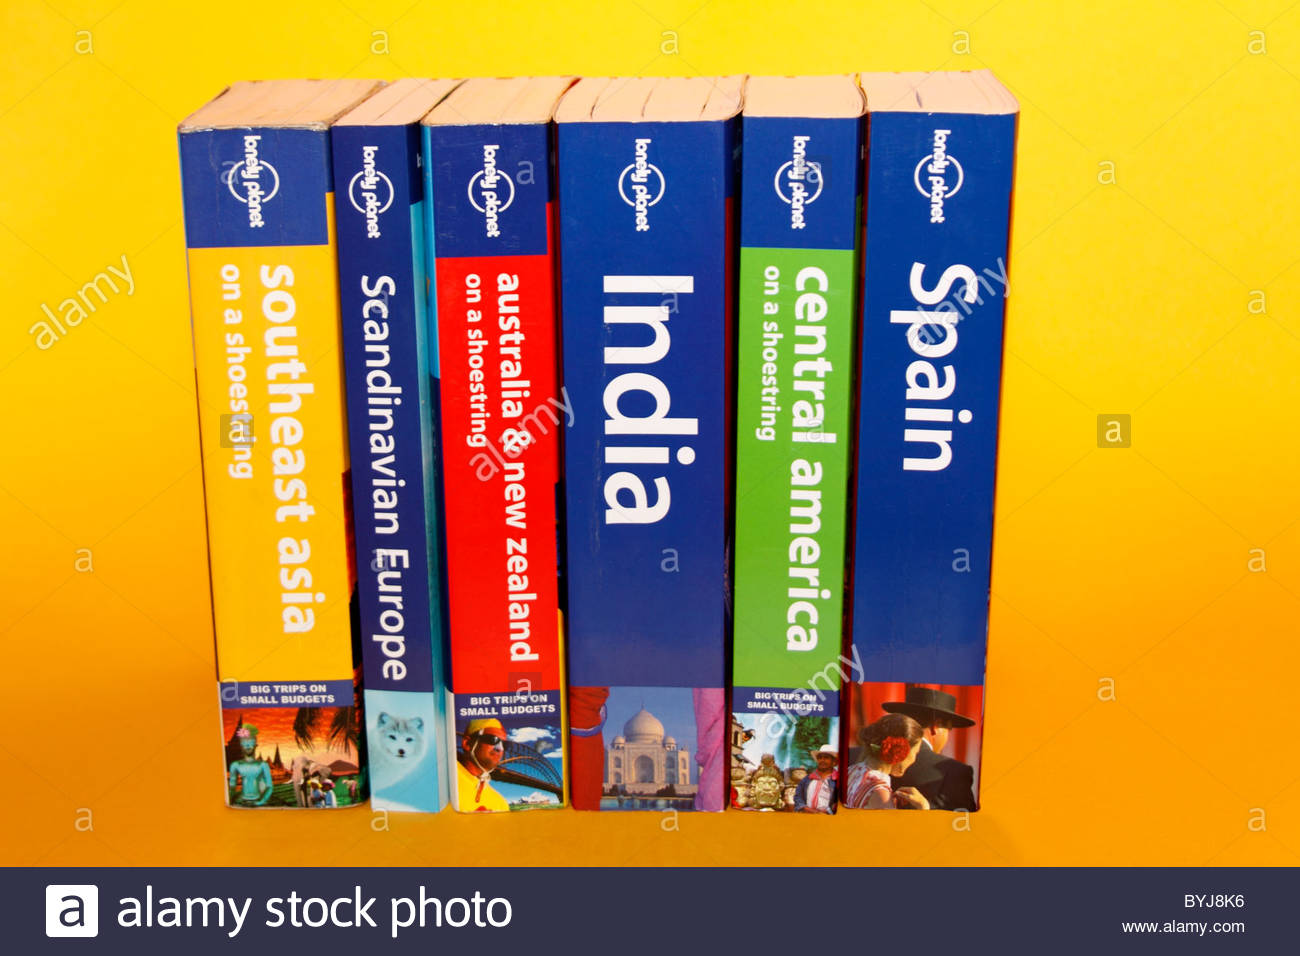 Studio shot of row of Lonely Planet guide books on a yellow background Stock Photo